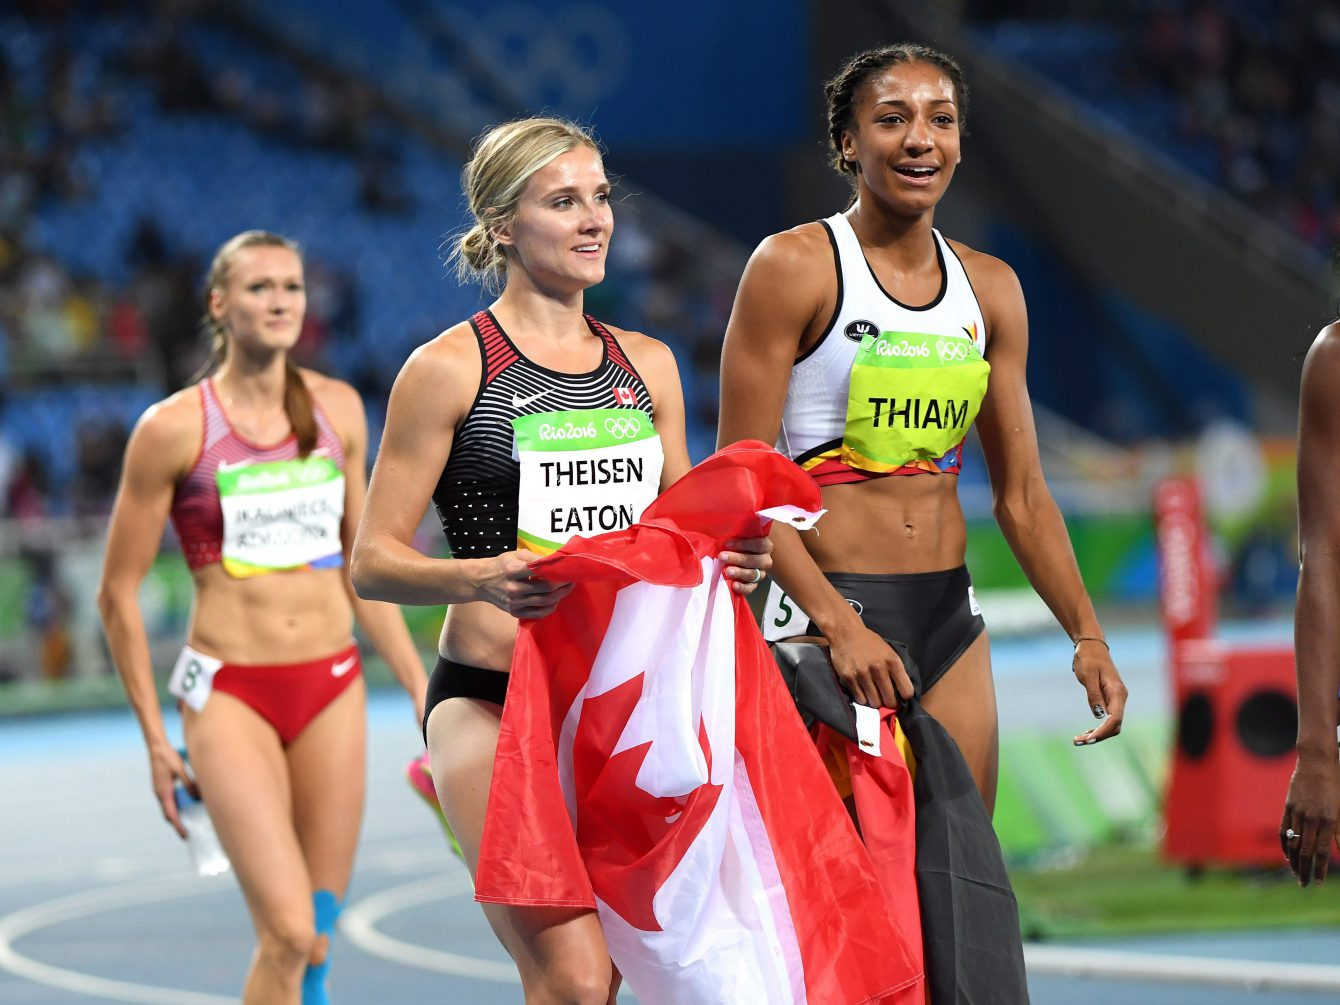 Canada's Brianne Theisen-Eaton, left, celebrates her bronze medal finish in front of gold medallist Nafissatou Thiam, of Belgium, in the women's heptathlon at the 2016 Olympic Games in Rio de Janeiro, Brazil on Saturday, Aug. 13, 2016. THE CANADIAN PRESS/Ryan Remiorz